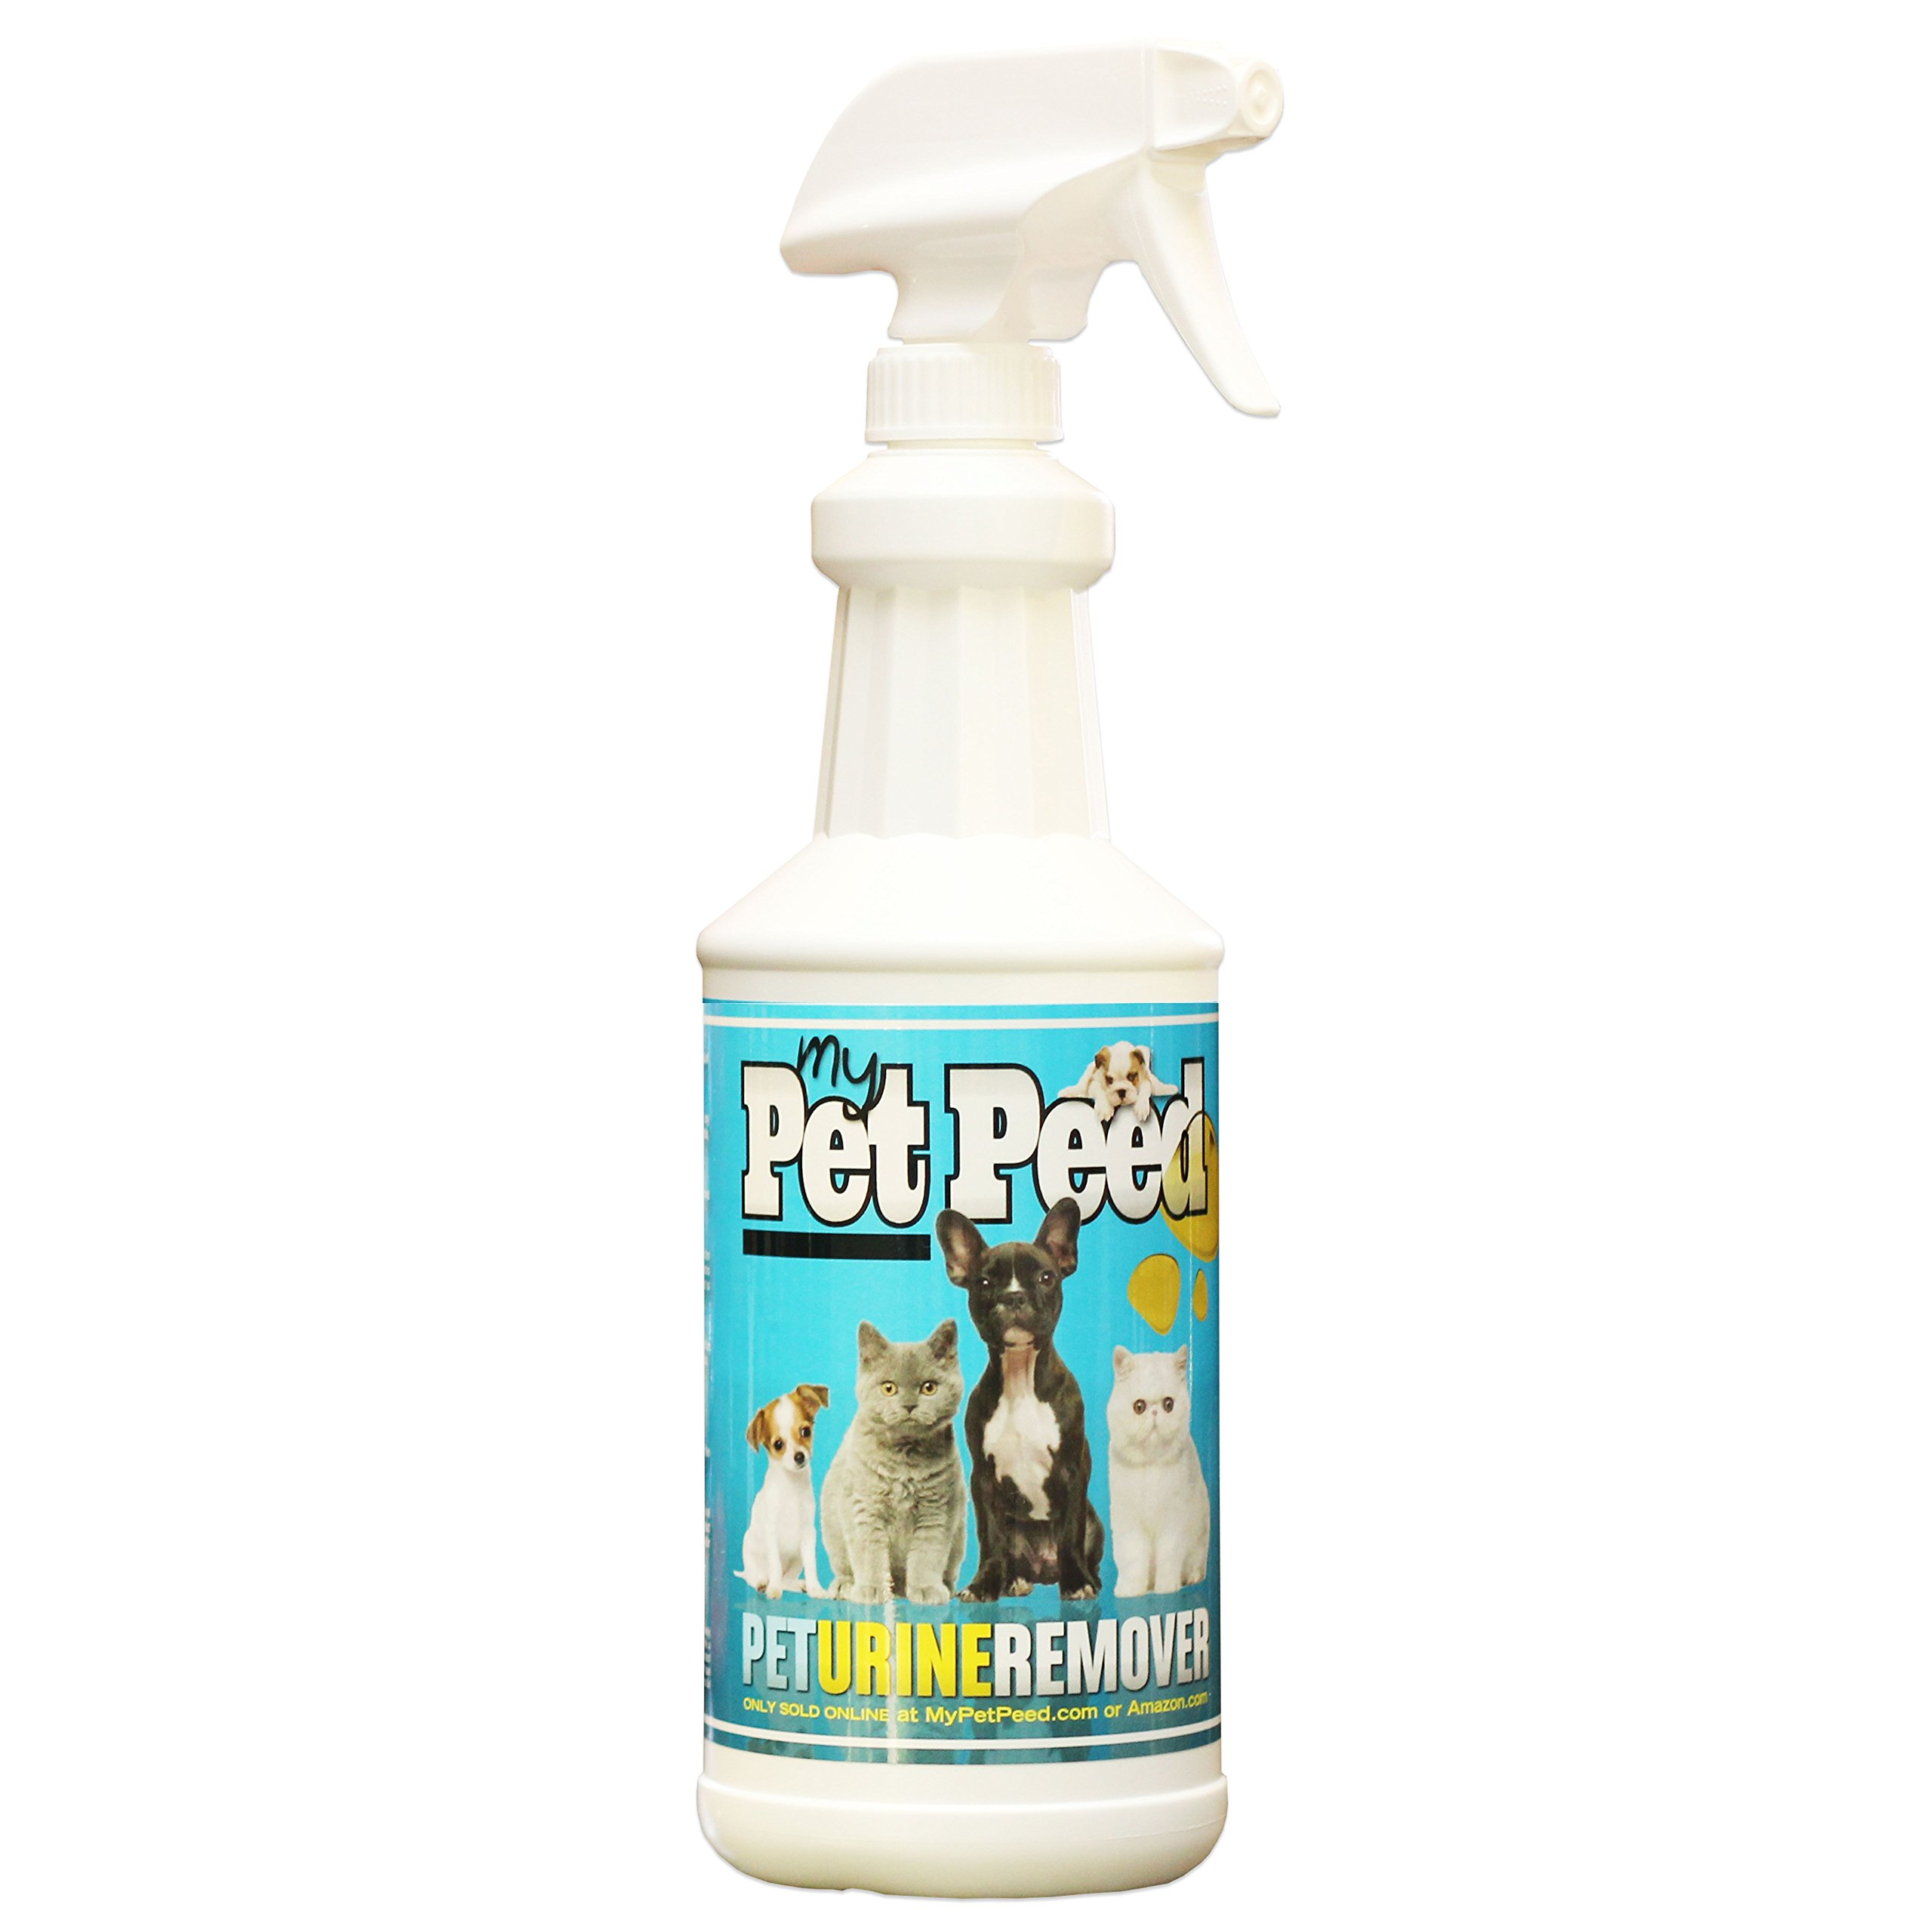 My Pet Peed - Pet Urine Remover (32oz Spray Bottle)GUARANTEED TO WORK OR YOUR (without the hassle of having to return anything)